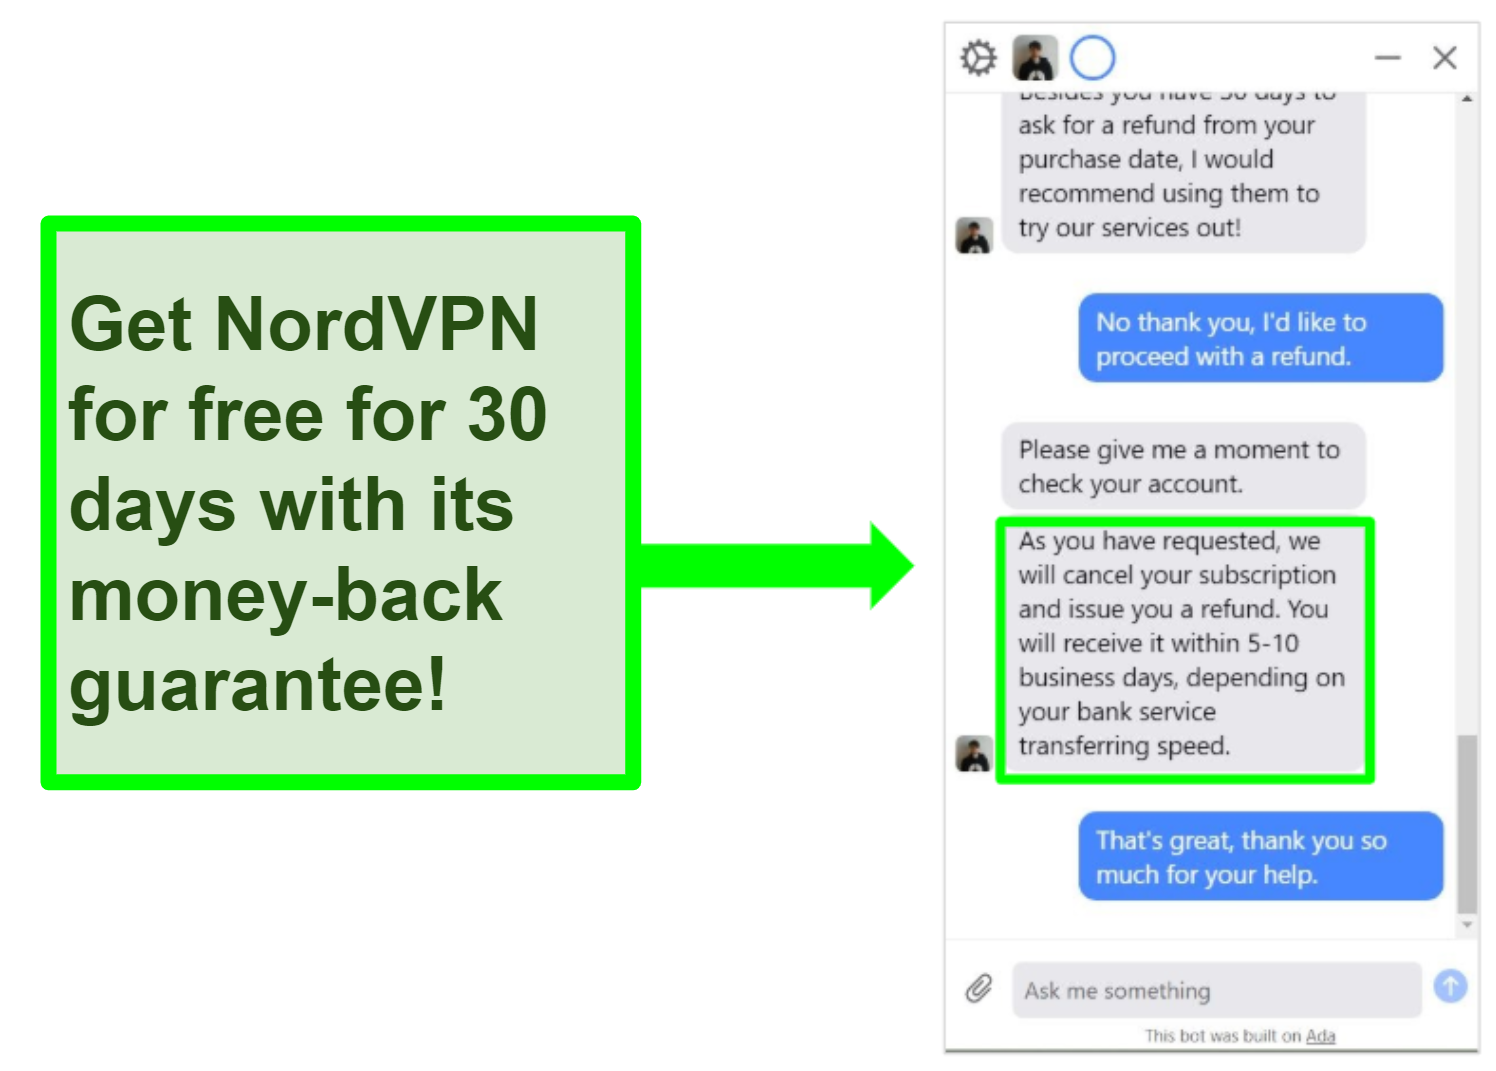 Screenshot of NordVPN customer service rep processing a refund